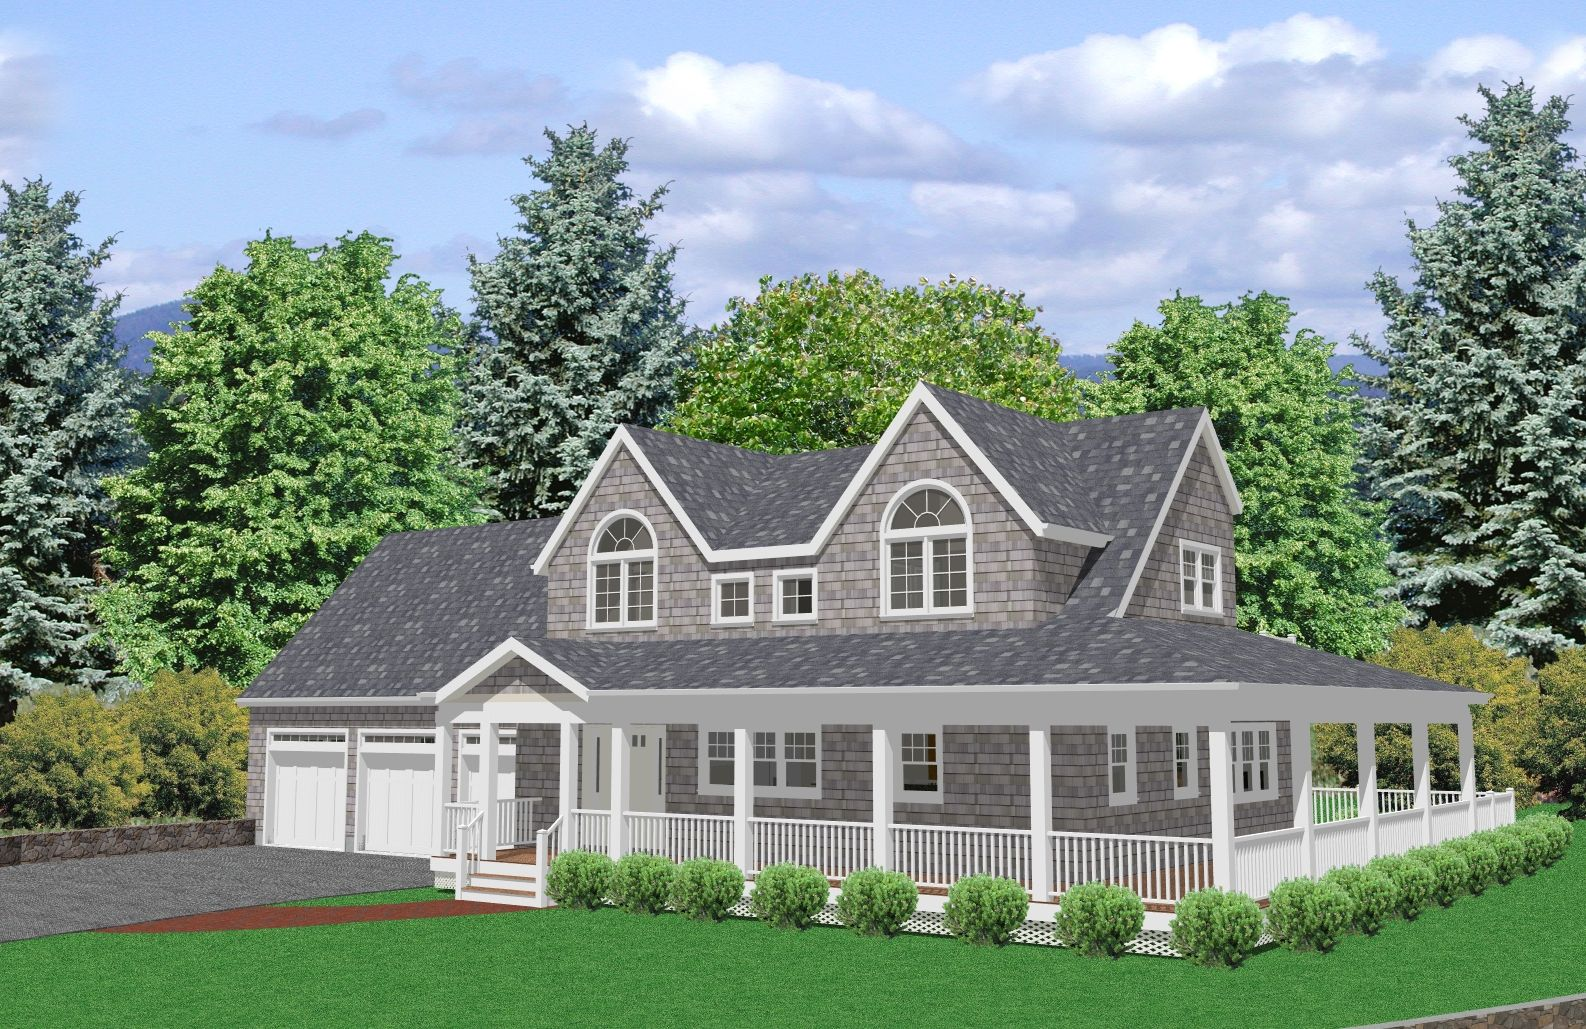 Cape cod style house plans 2027 sq ft 3 bedroom cape cod for Cape cod style house additions